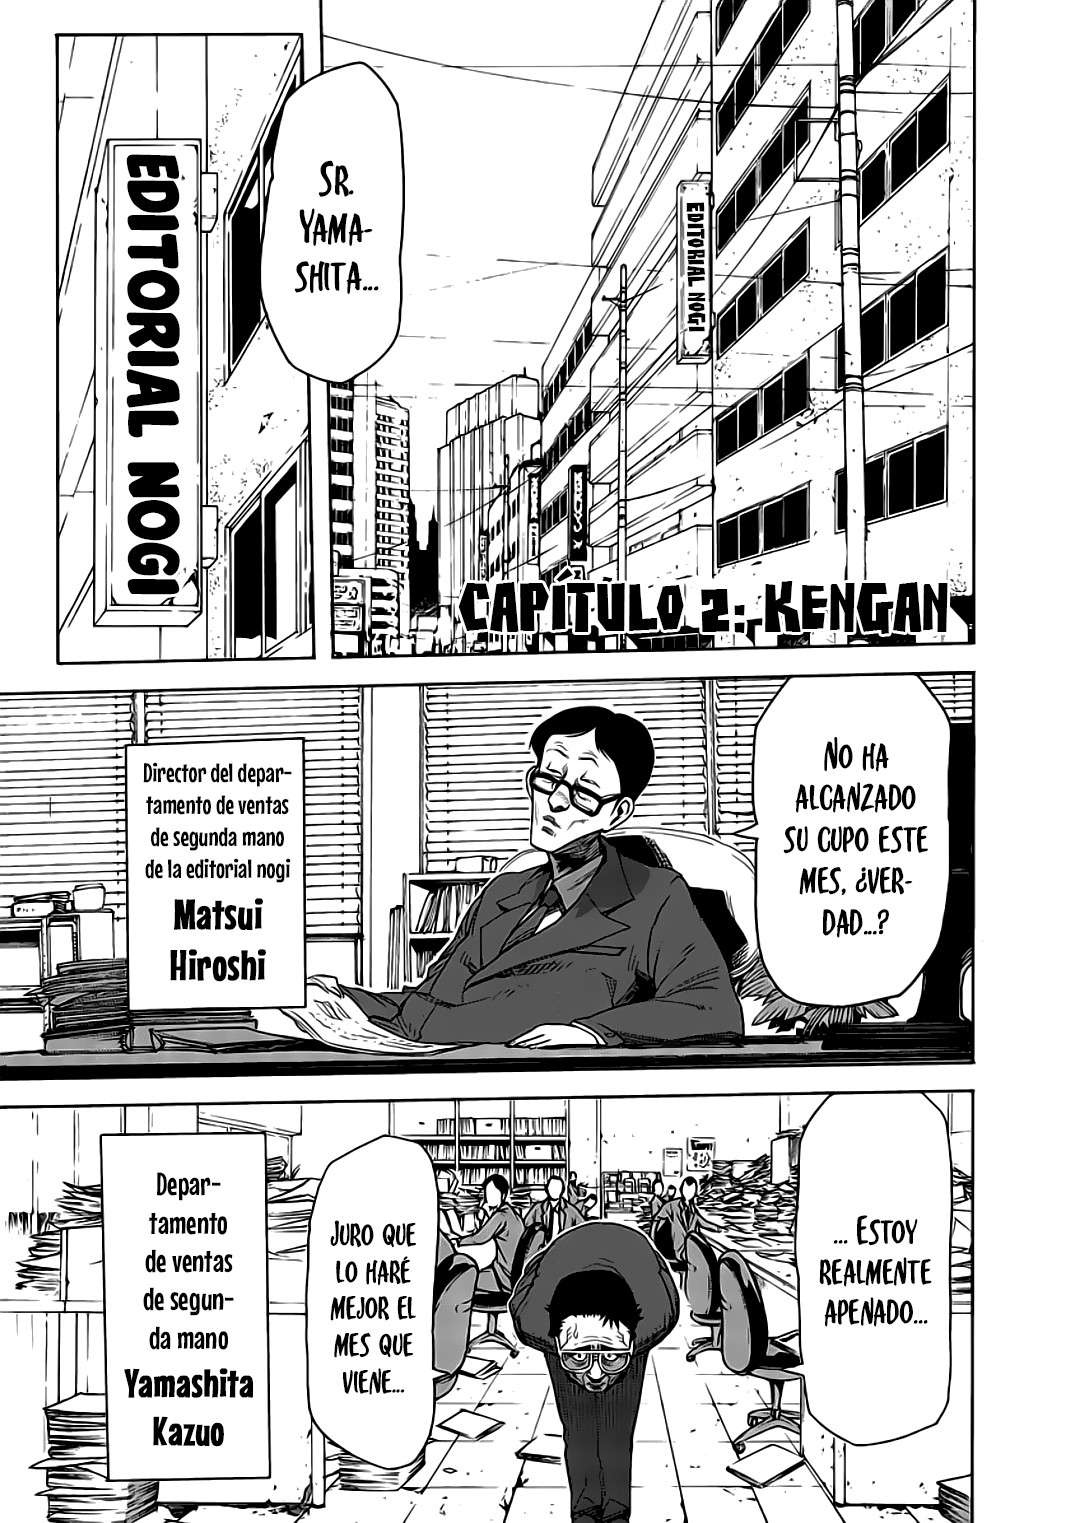 http://c5.ninemanga.com/es_manga/54/15862/389851/186e1b0ba5b03fba924e4a2486692568.jpg Page 3